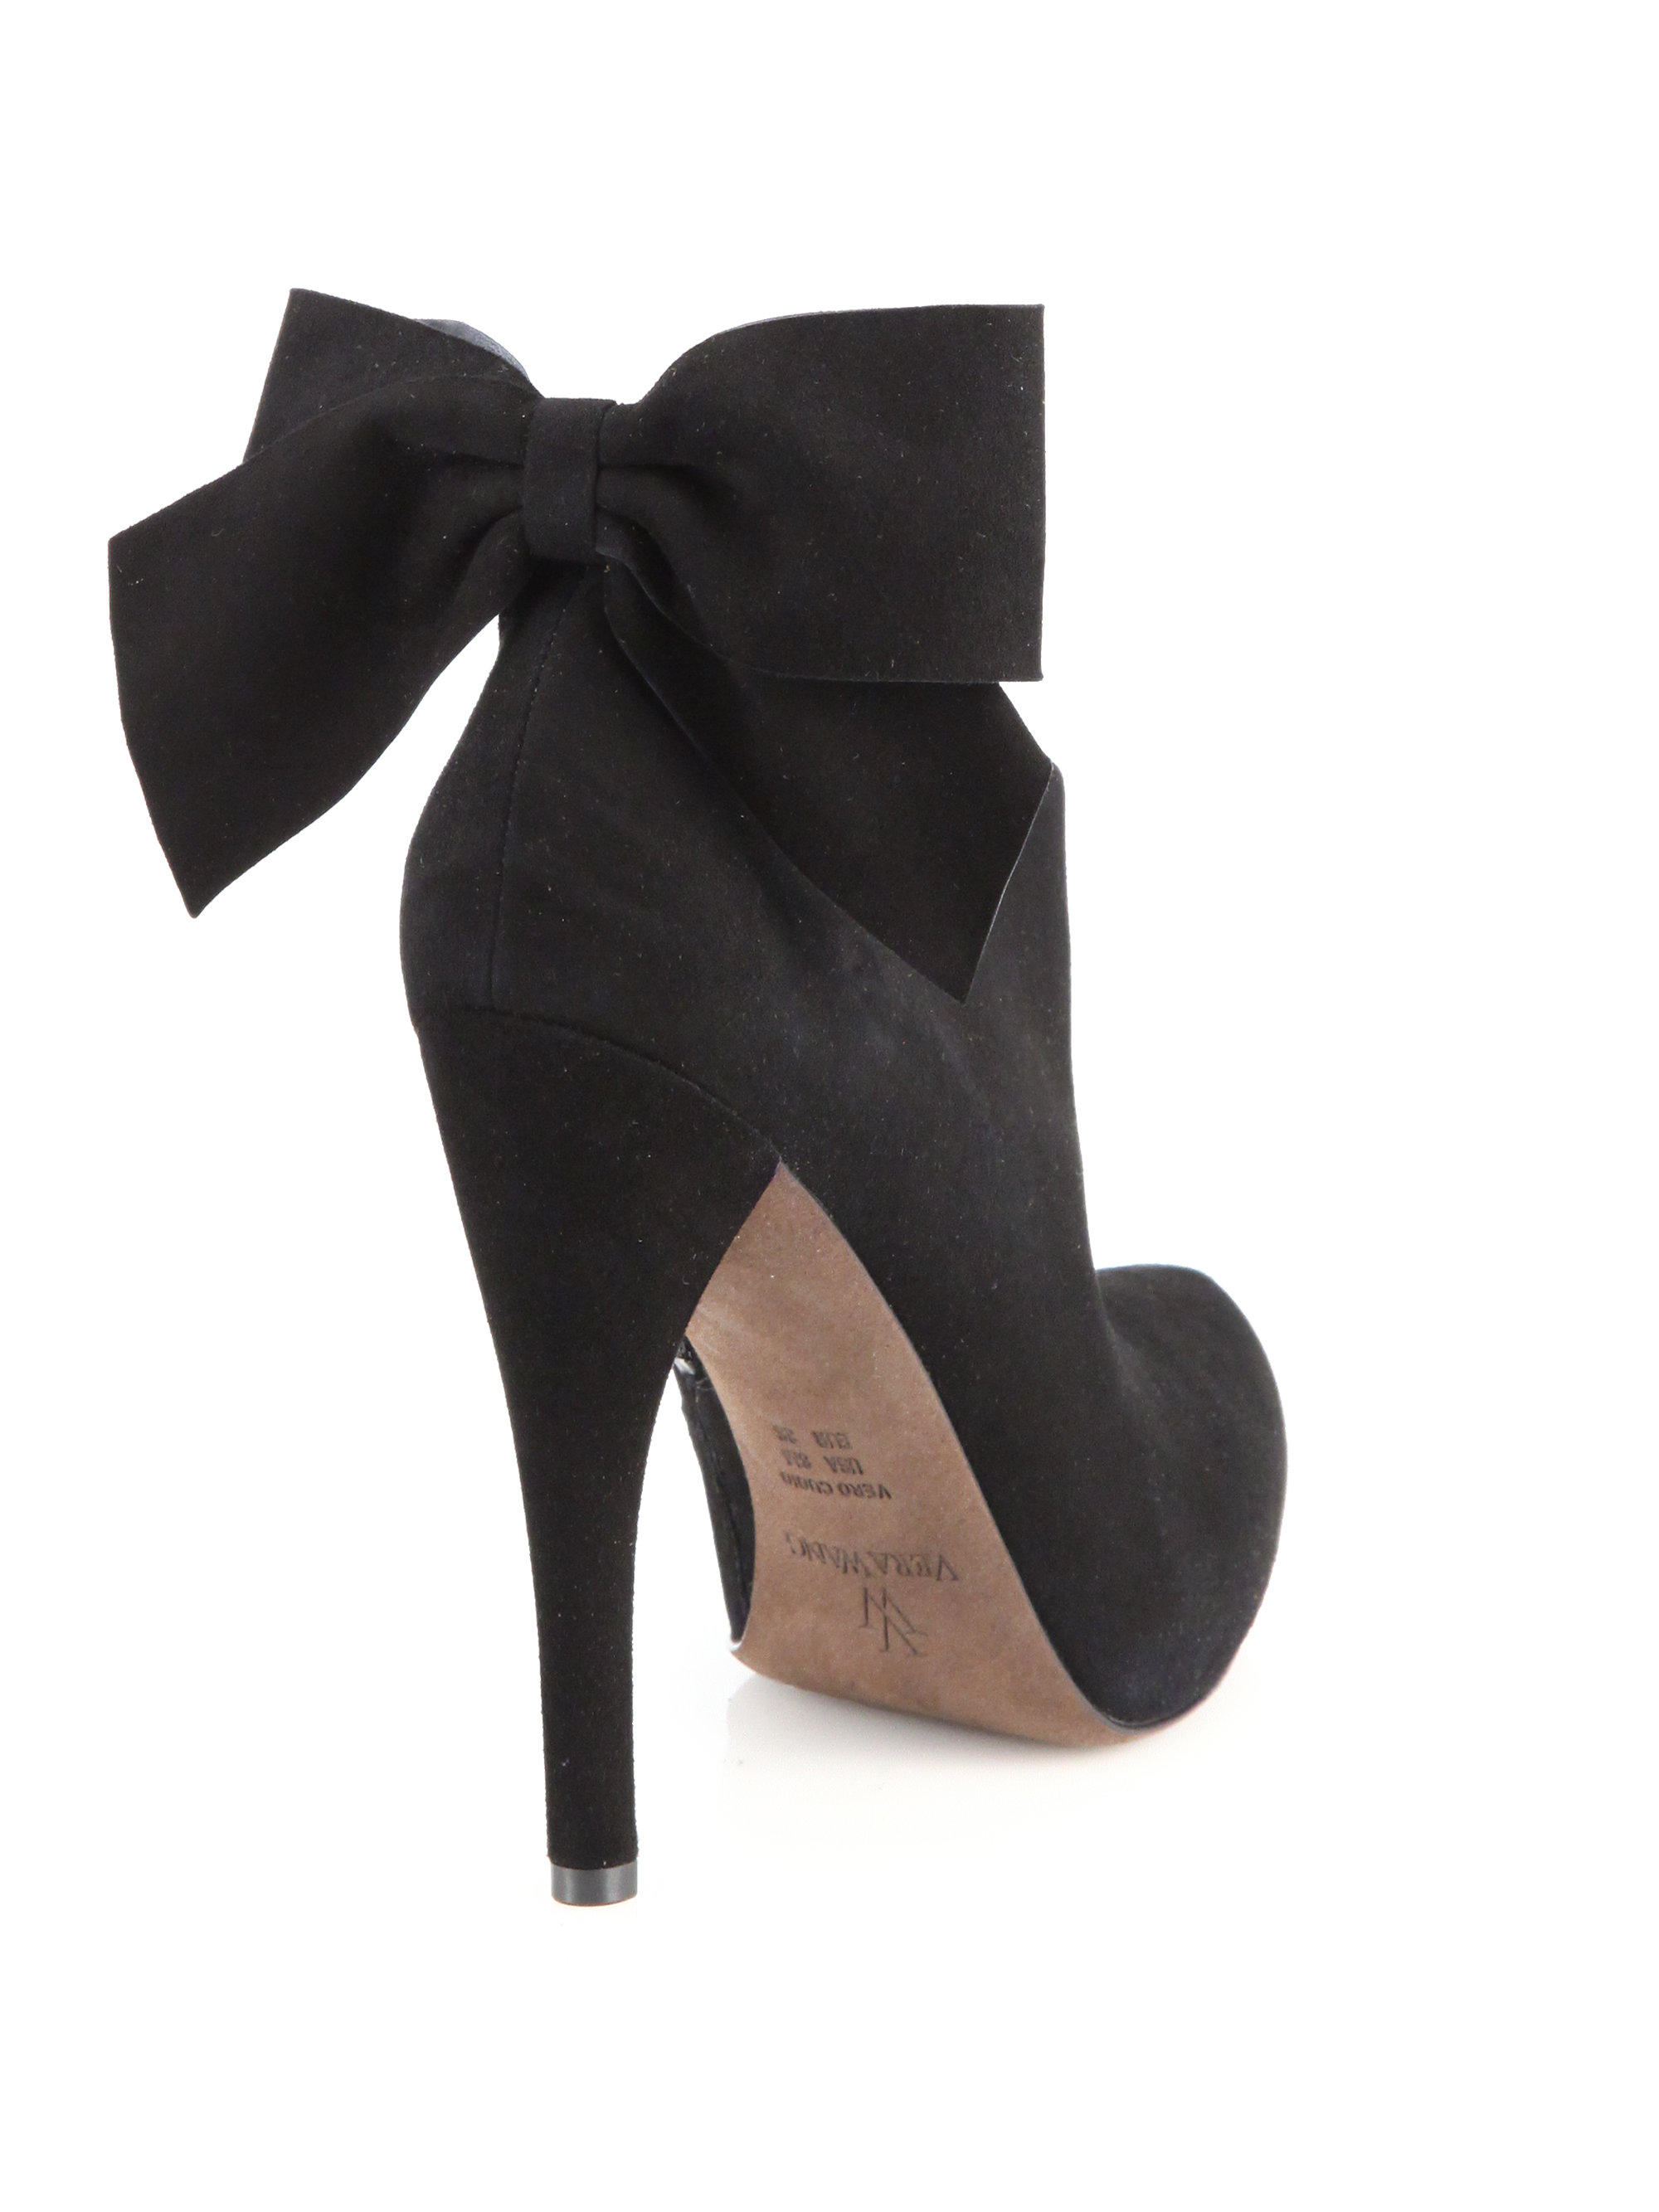 Vera wang lavender Jude Suede Bow Ankle Boots in Black | Lyst